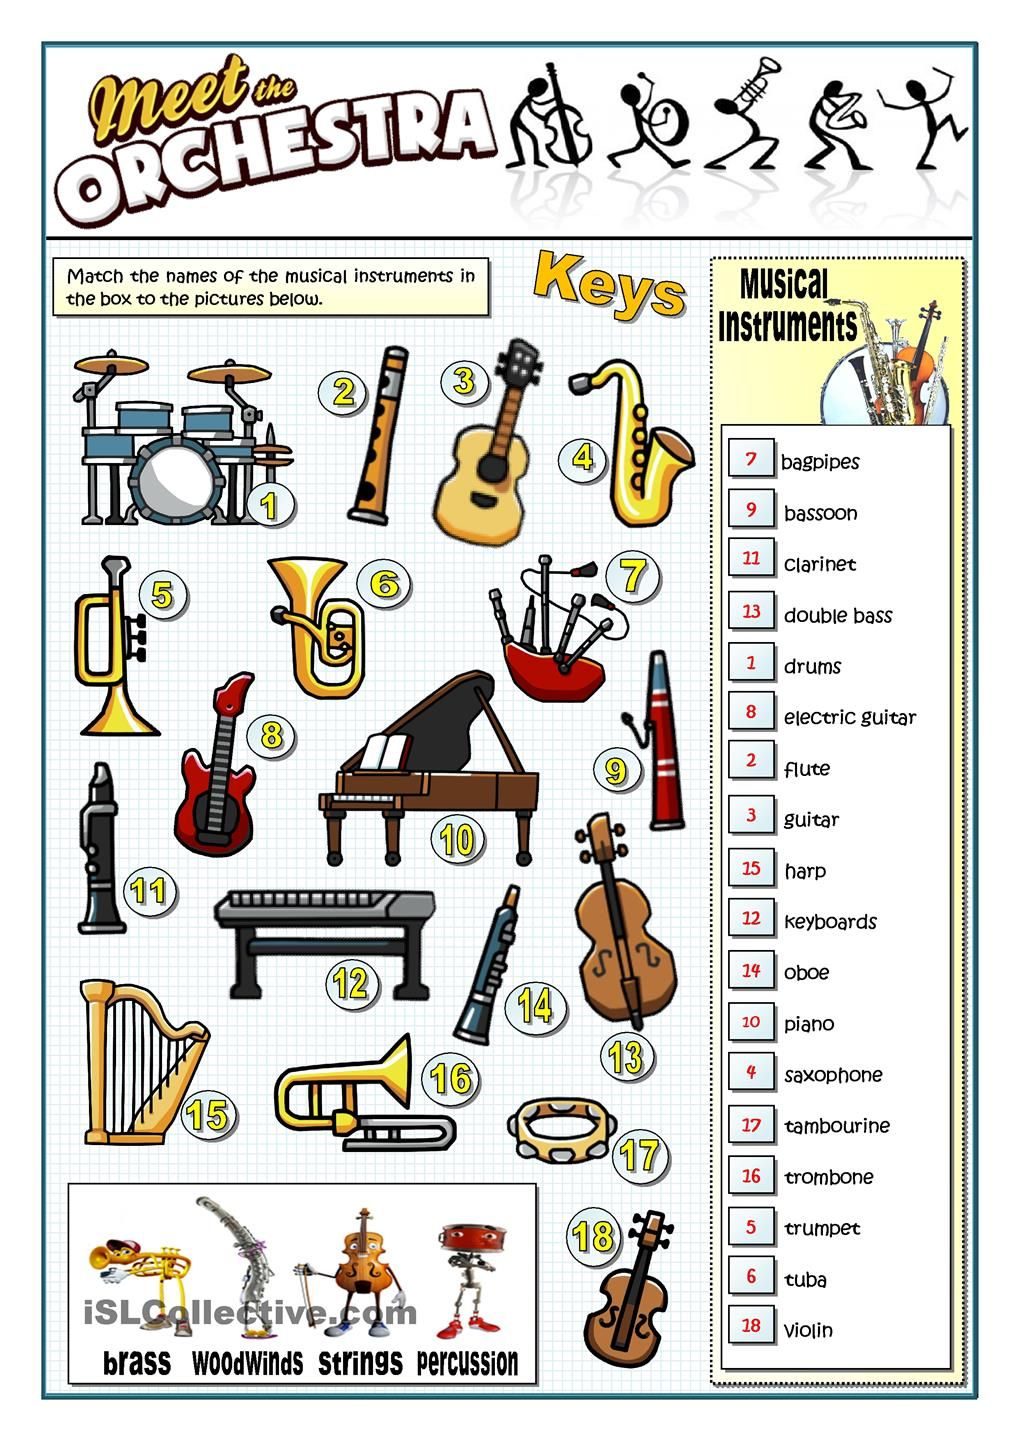 Worksheets Orchestra Worksheets meet the orchestra hinh anh pinterest worksheets orchestra